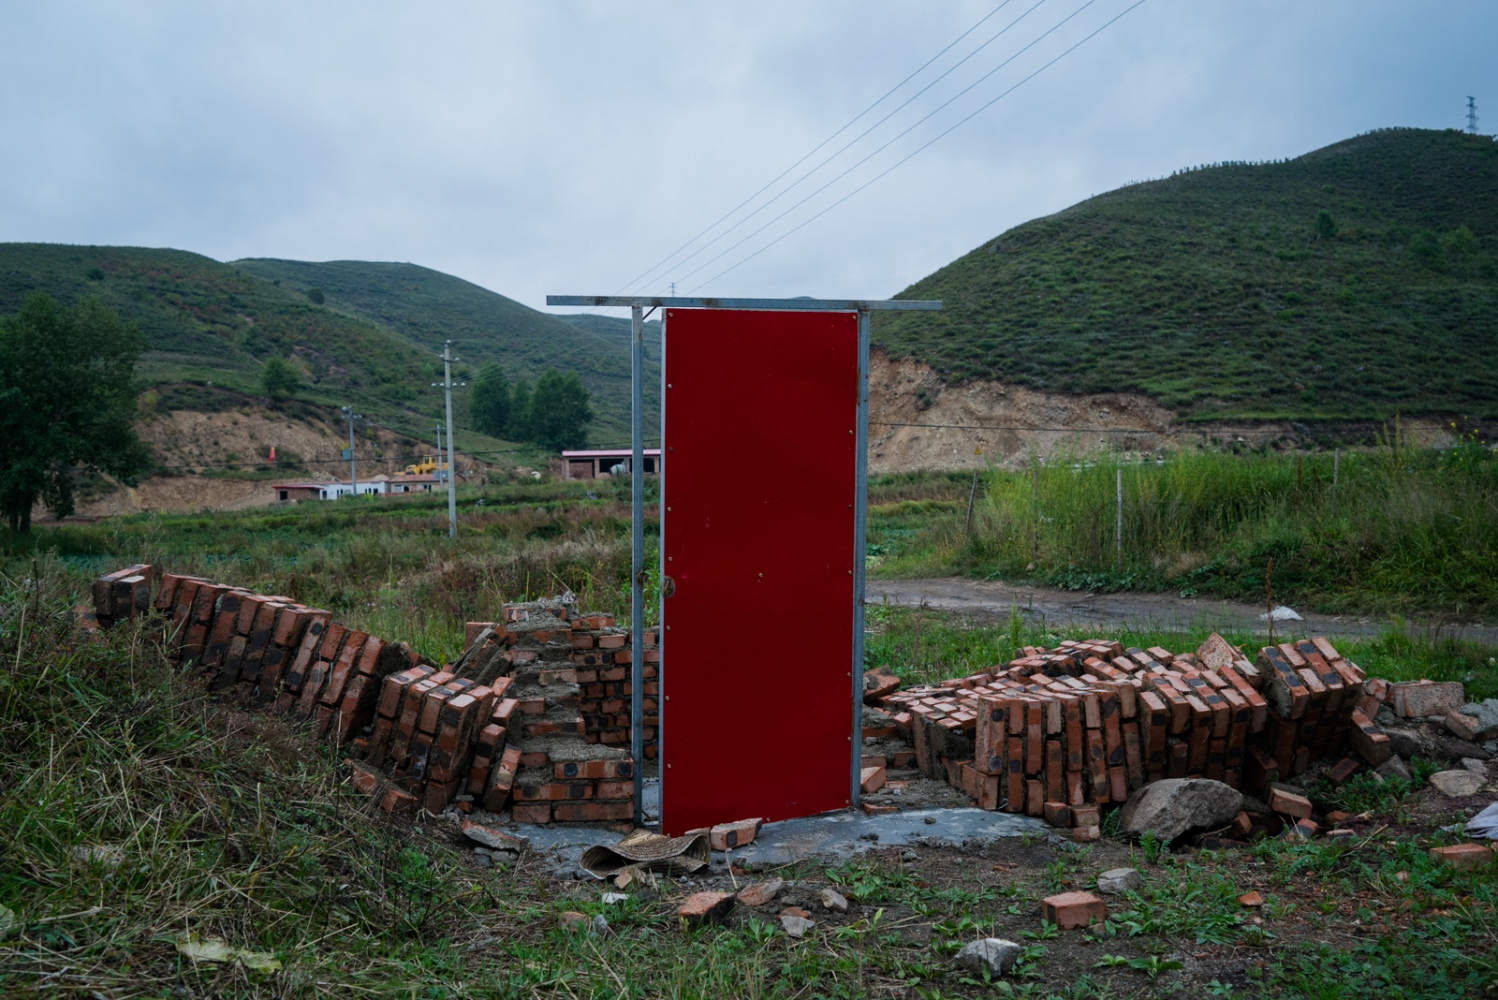 An abandoned housing construction in Taizicheng village. Soon after Beijing and Zhangjiakou won the bid for 2022 Winter Olympics, notices were put up in the village warning families to stop building more houses in an attempt to claim more compensation for future relocation.